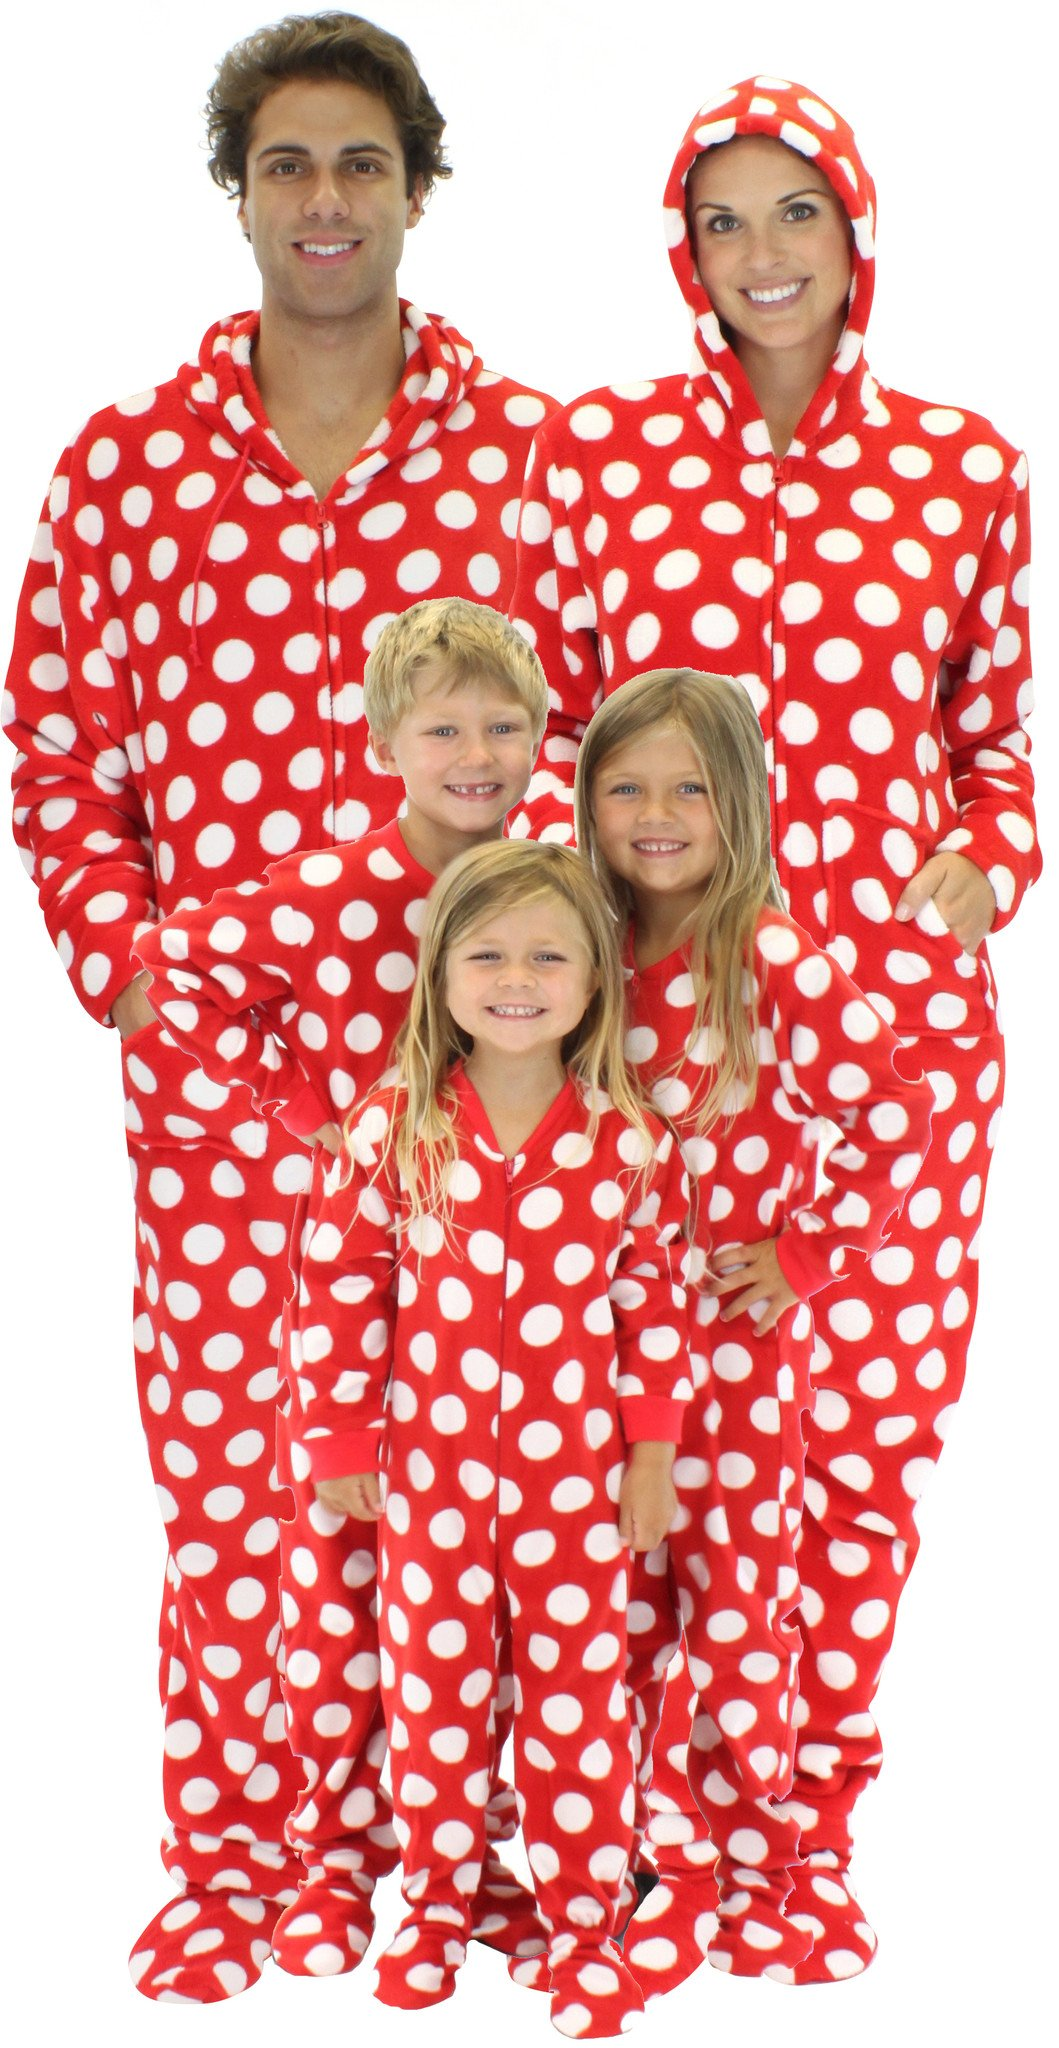 Red and White Polka Dot Footed Family Pajamas